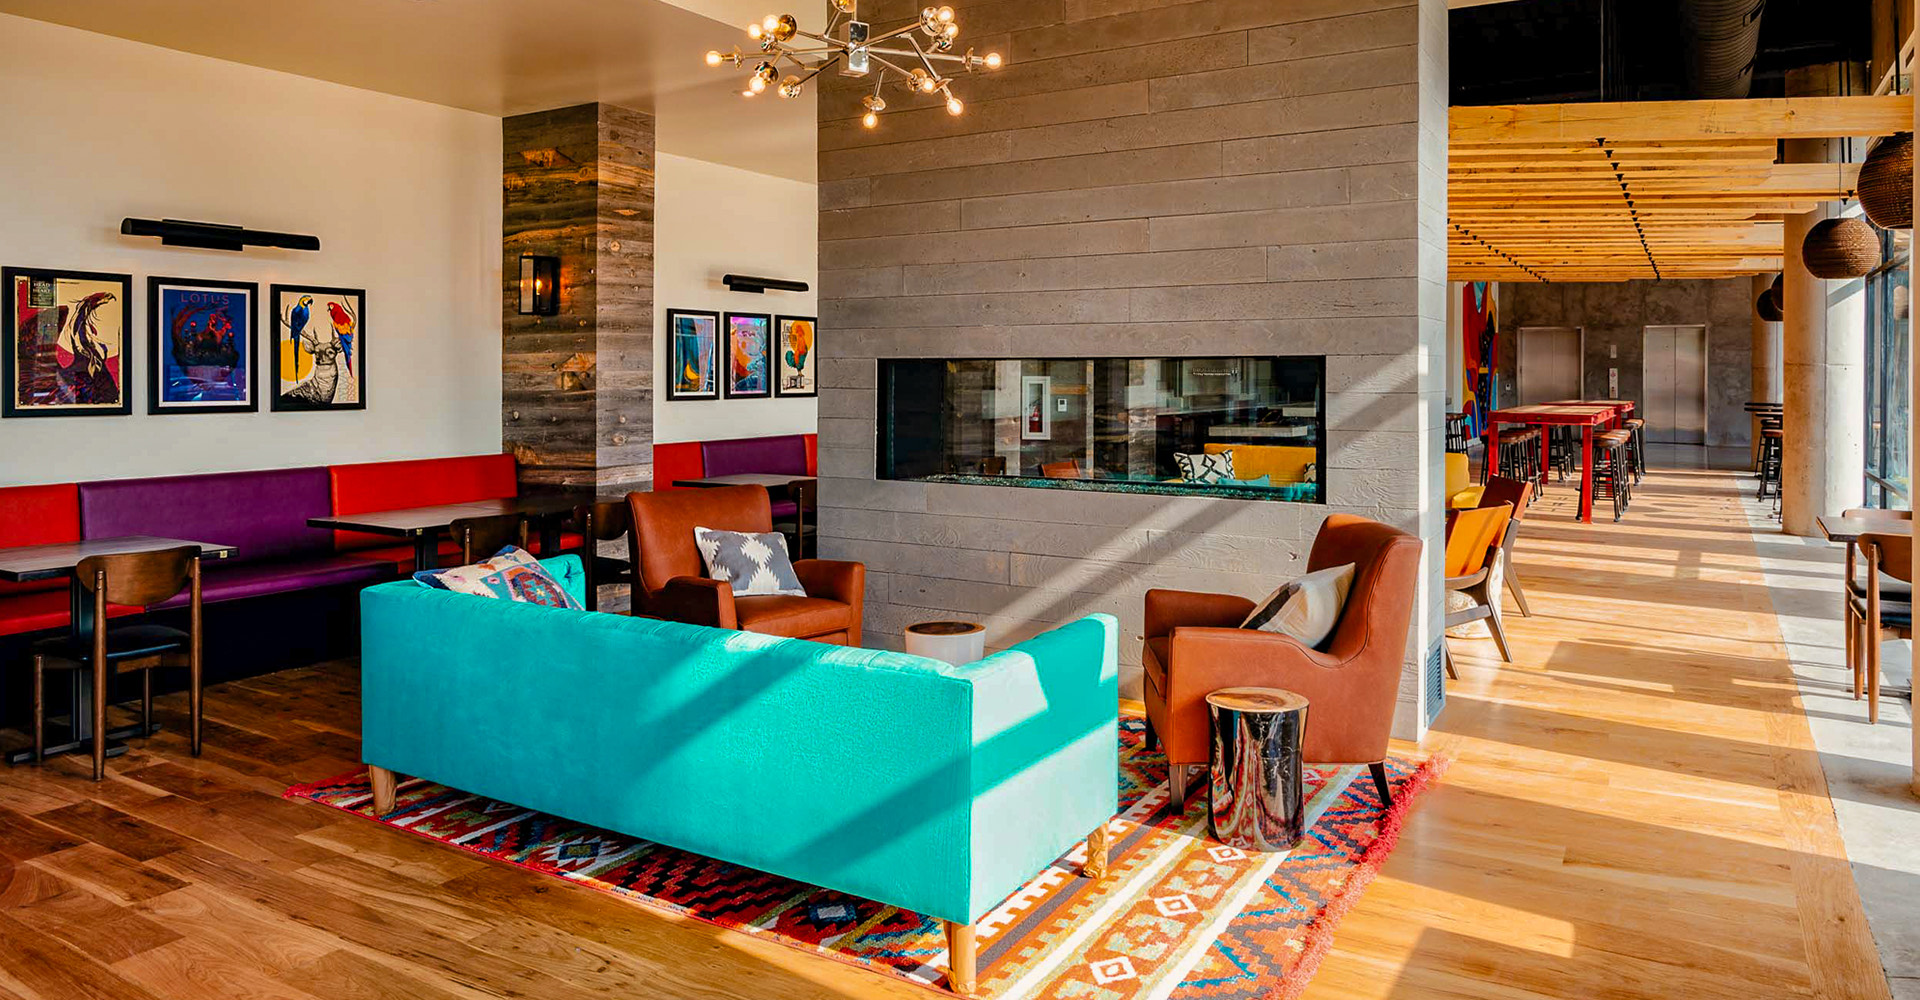 multicolored couches surrounding the lobby fireplace